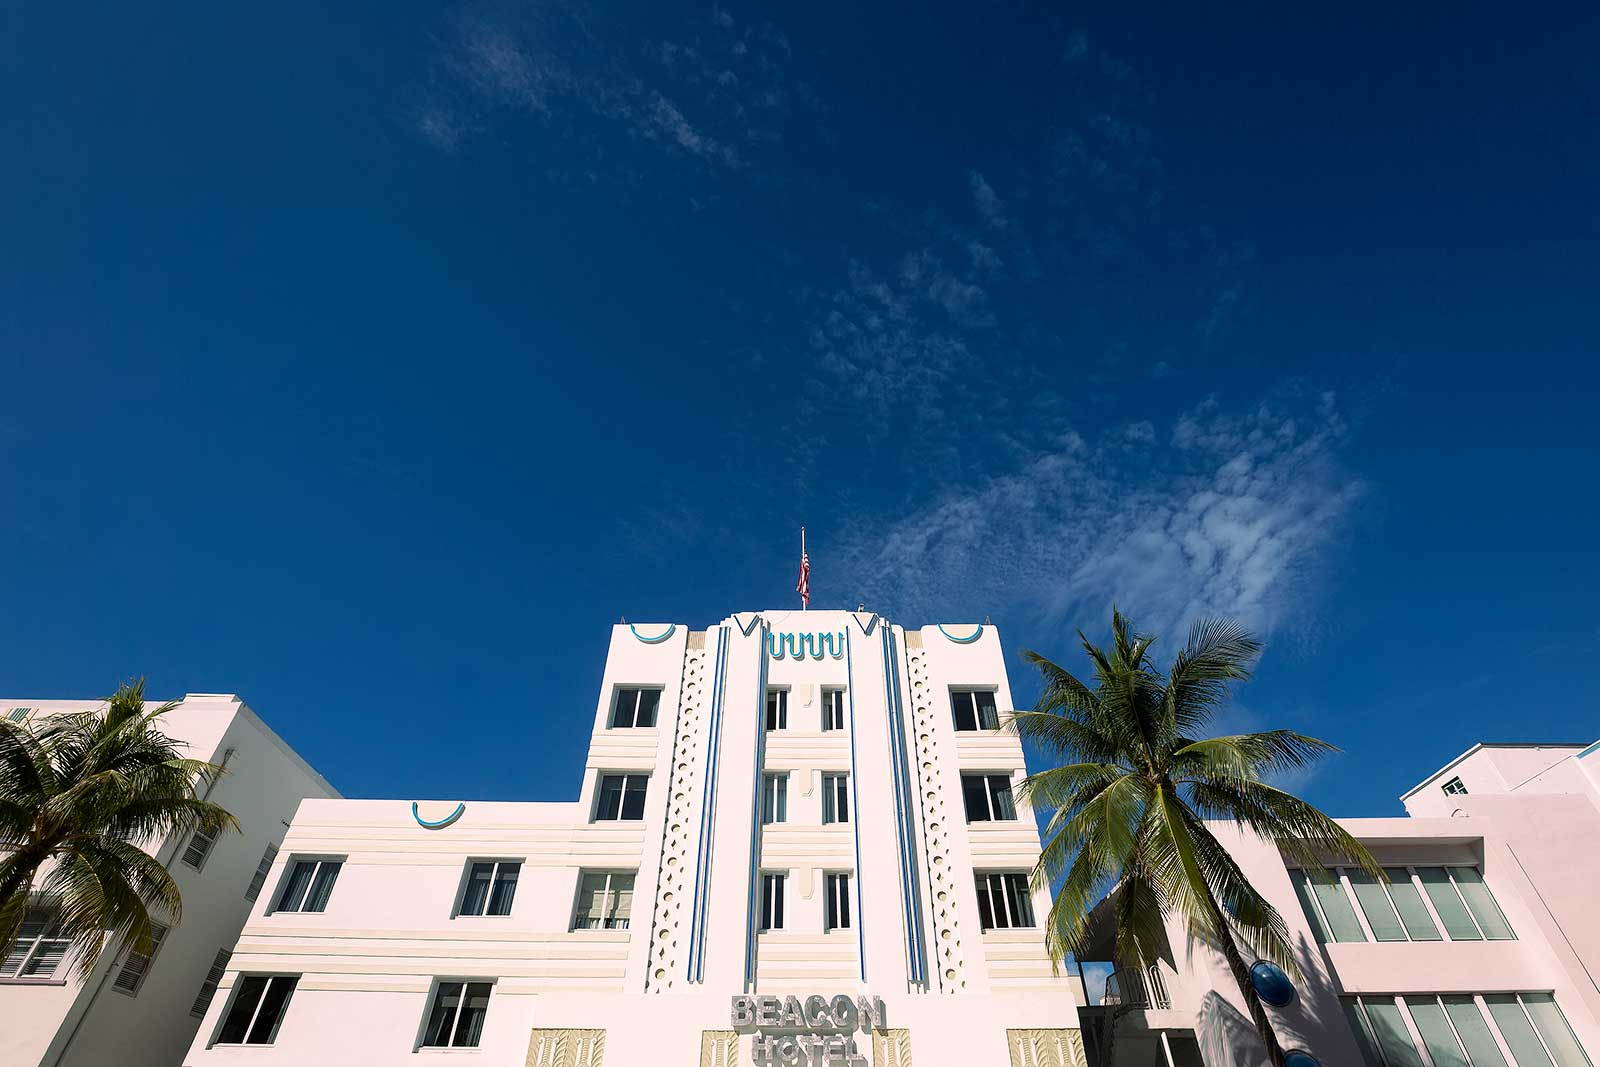 The Beacon Hotel is a luxury boutique hotel on Ocean Drive, right next to South Beach.